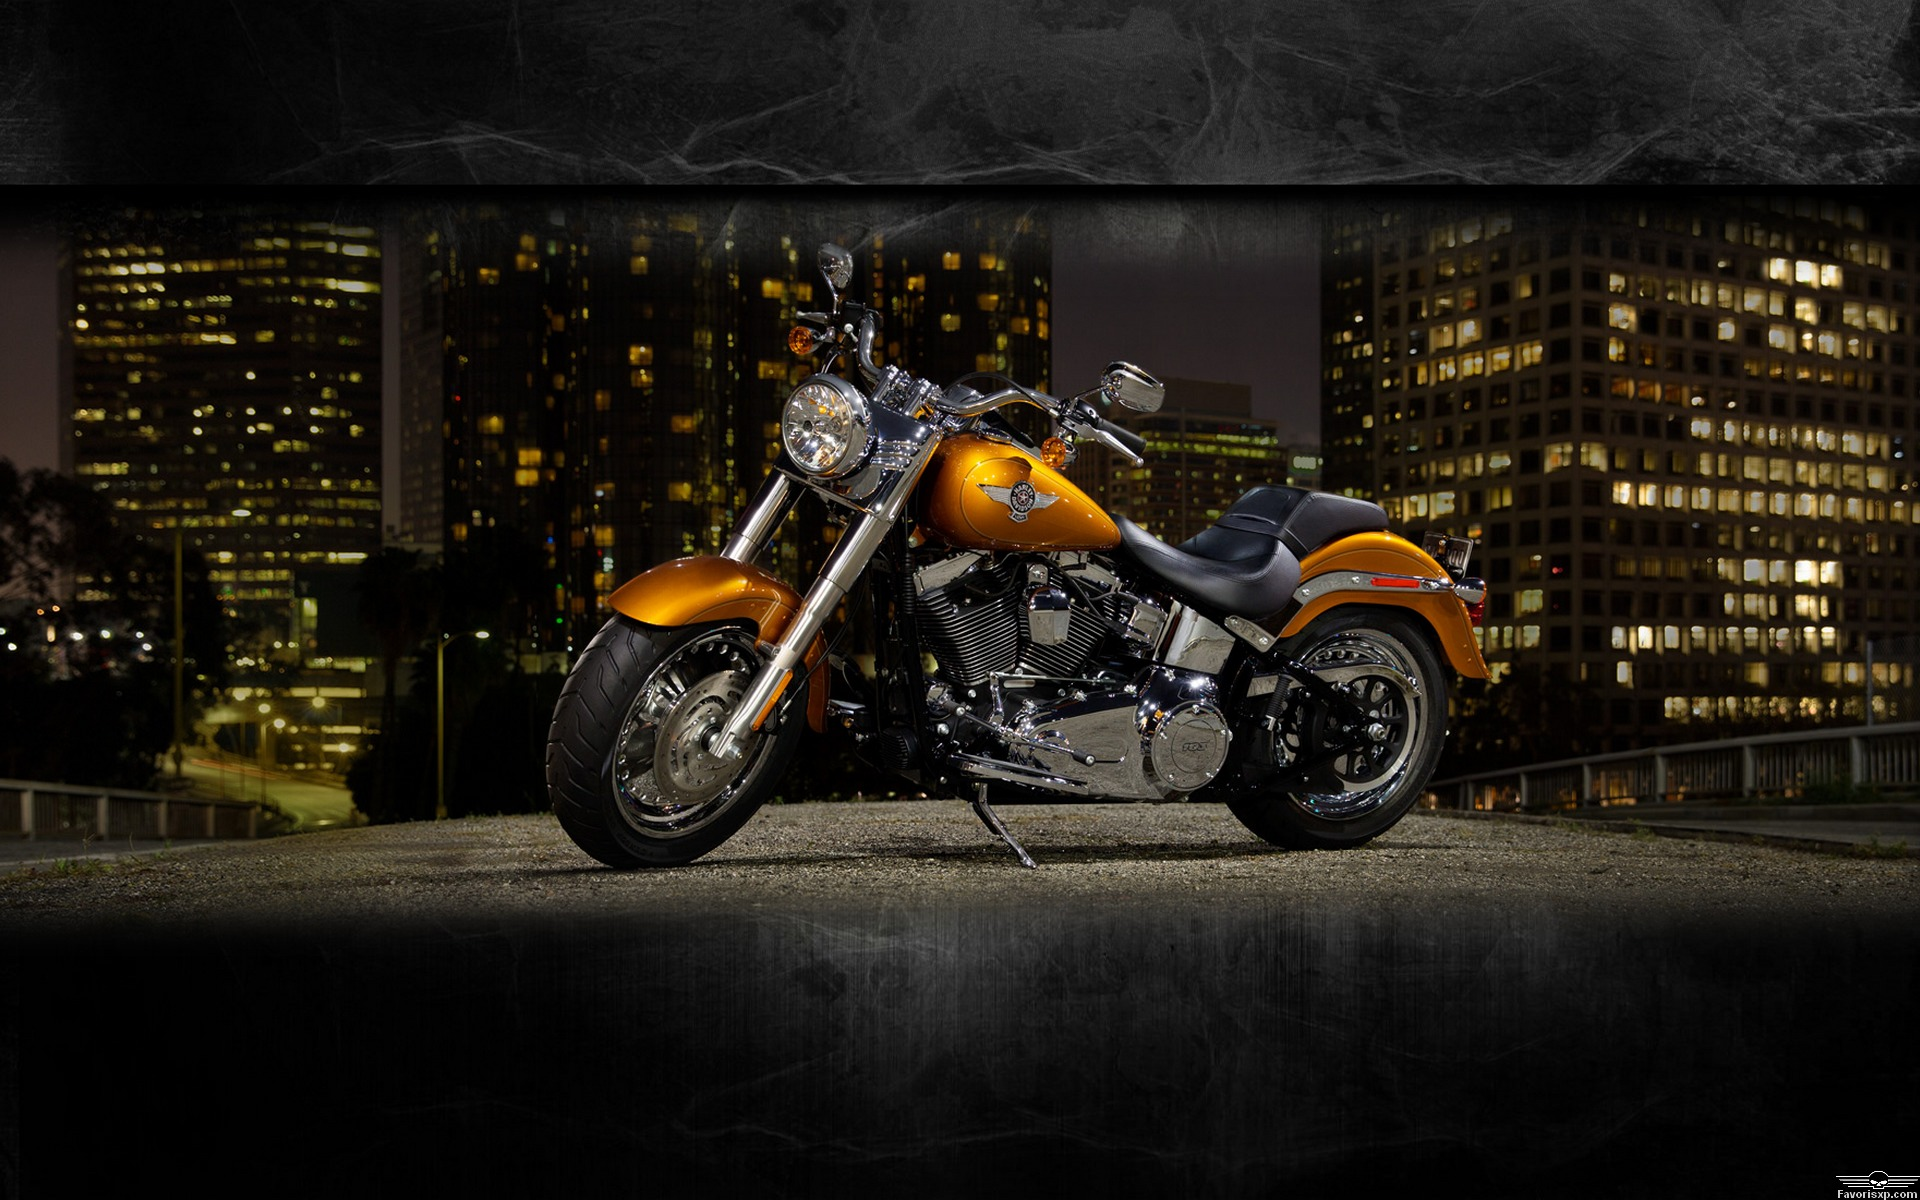 Fond-d%C3%A9cran-Harley-Davidson-Softail-Fat-Boy-harley-davidson-motorycles-wallpaper-wp5007629